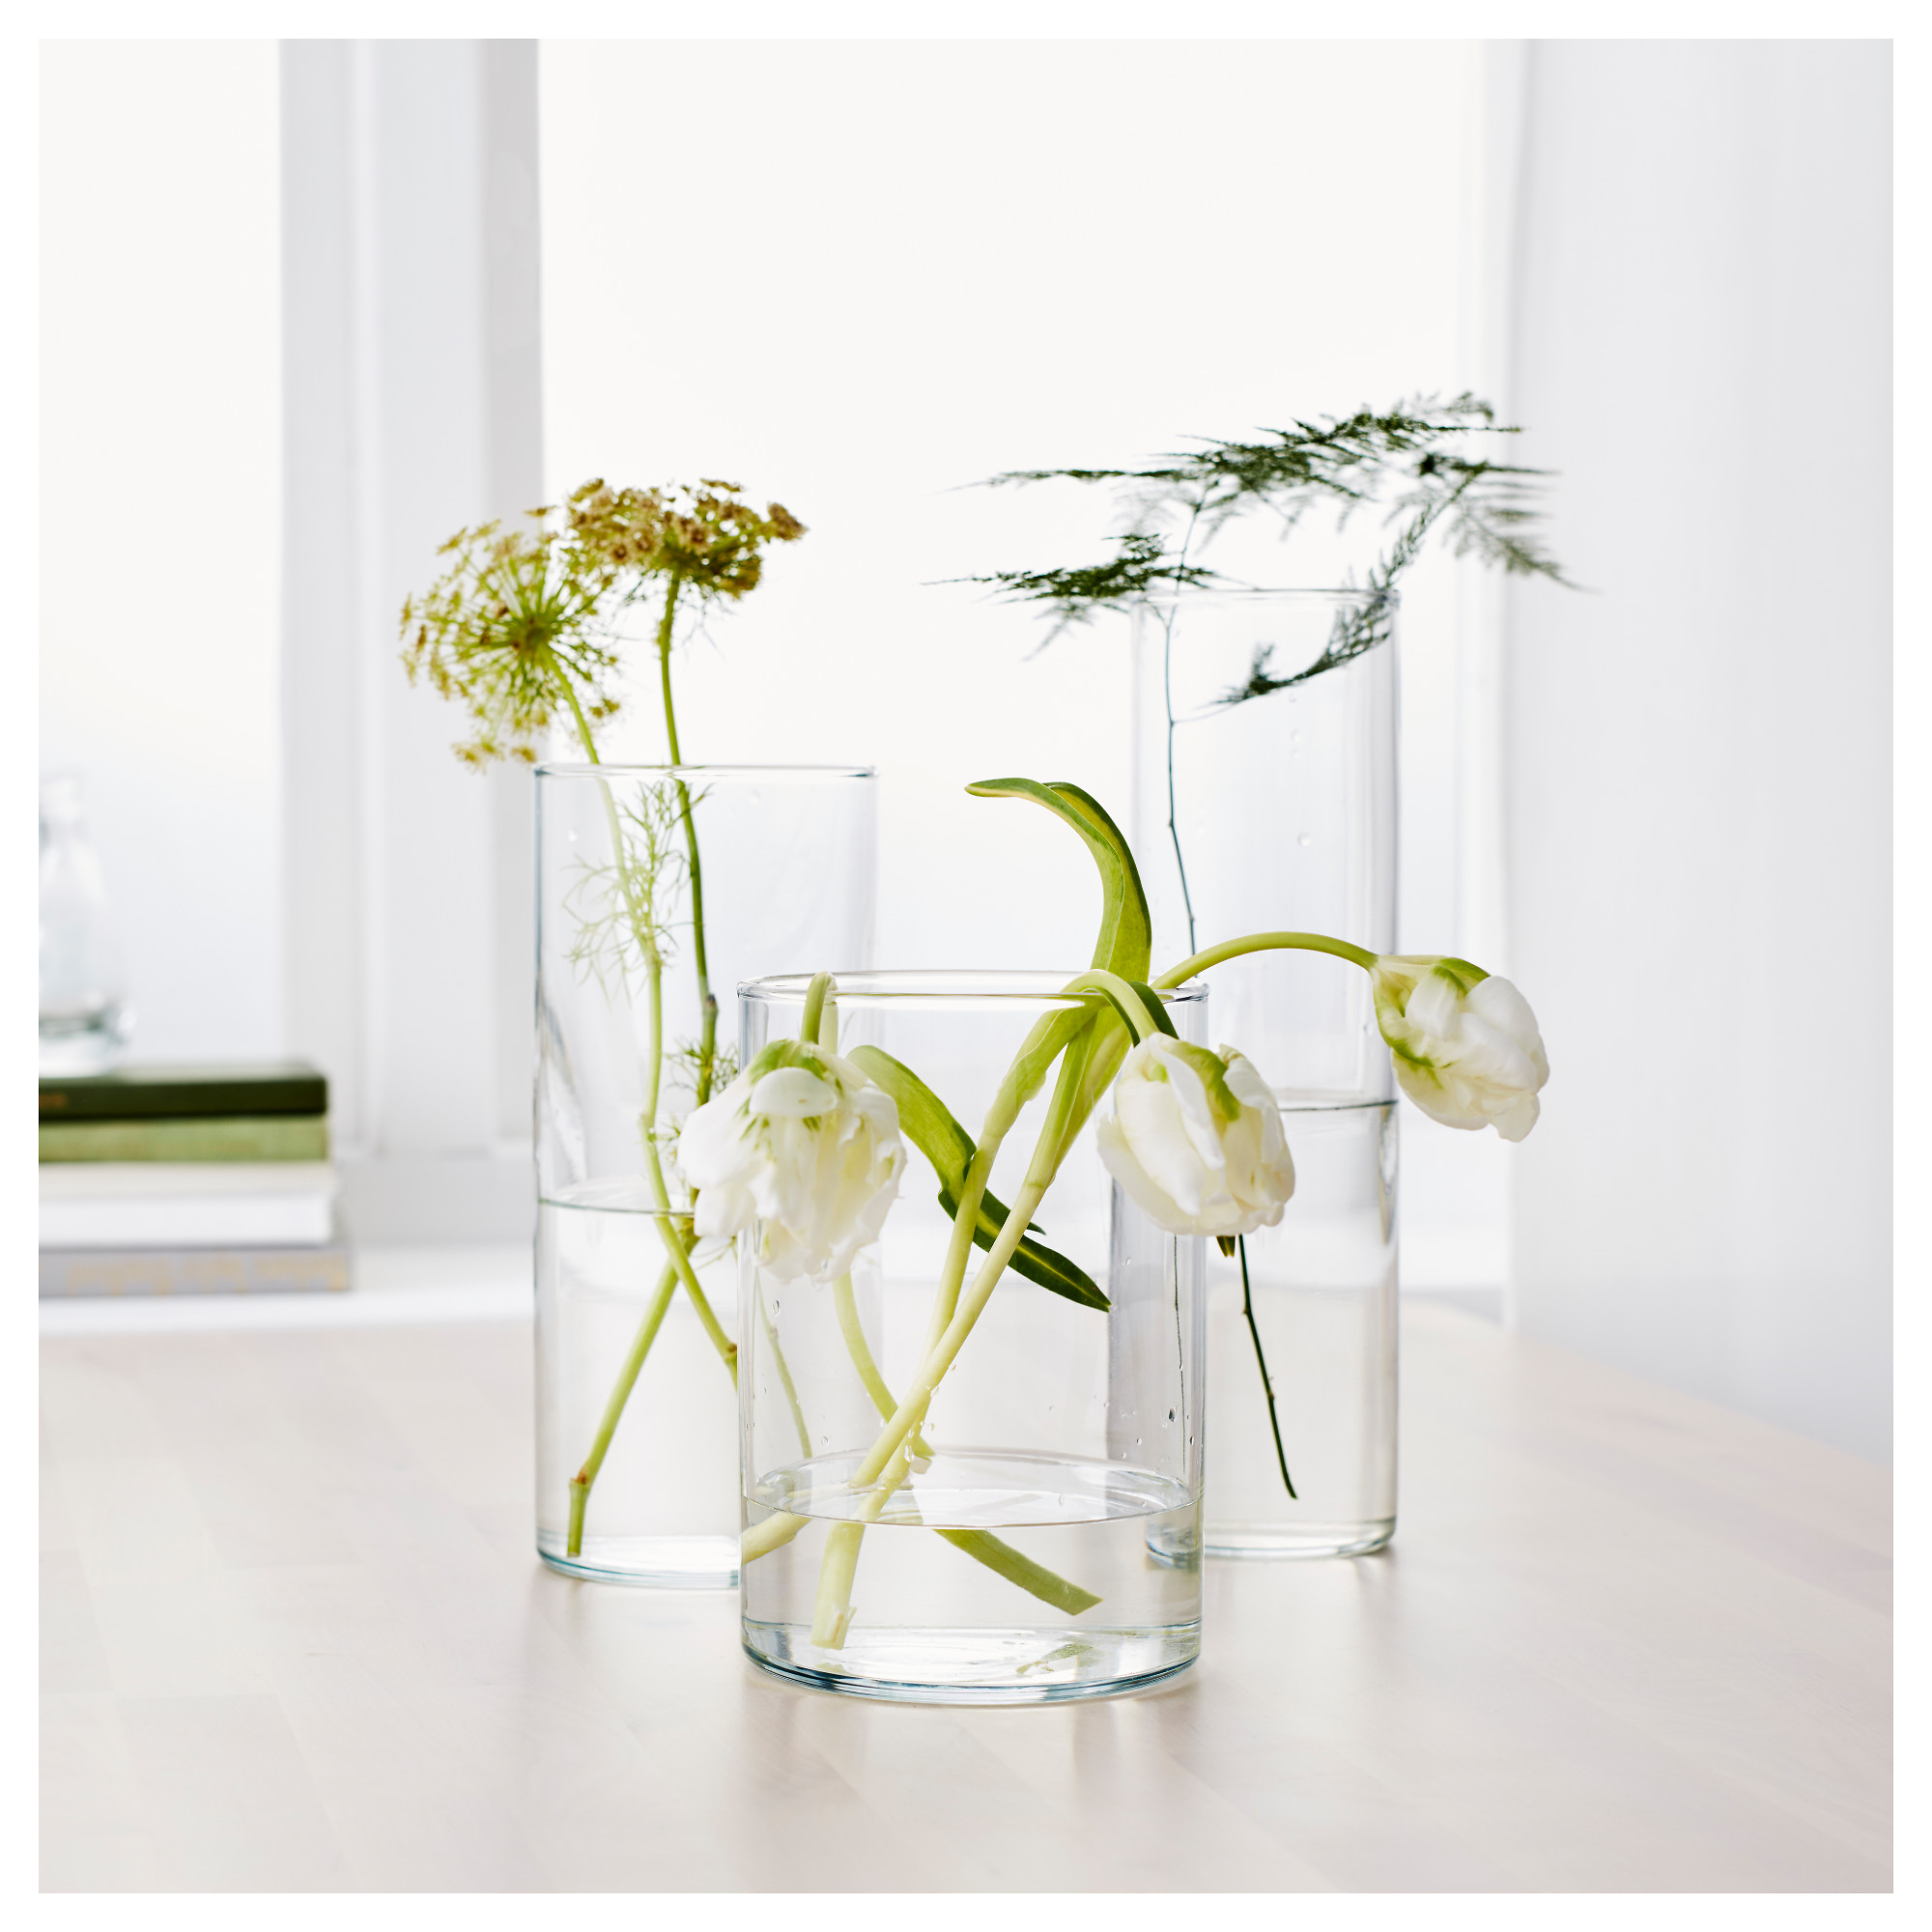 product cylinder category img furniture dubai tableware event rental vase glass decor and rent vases